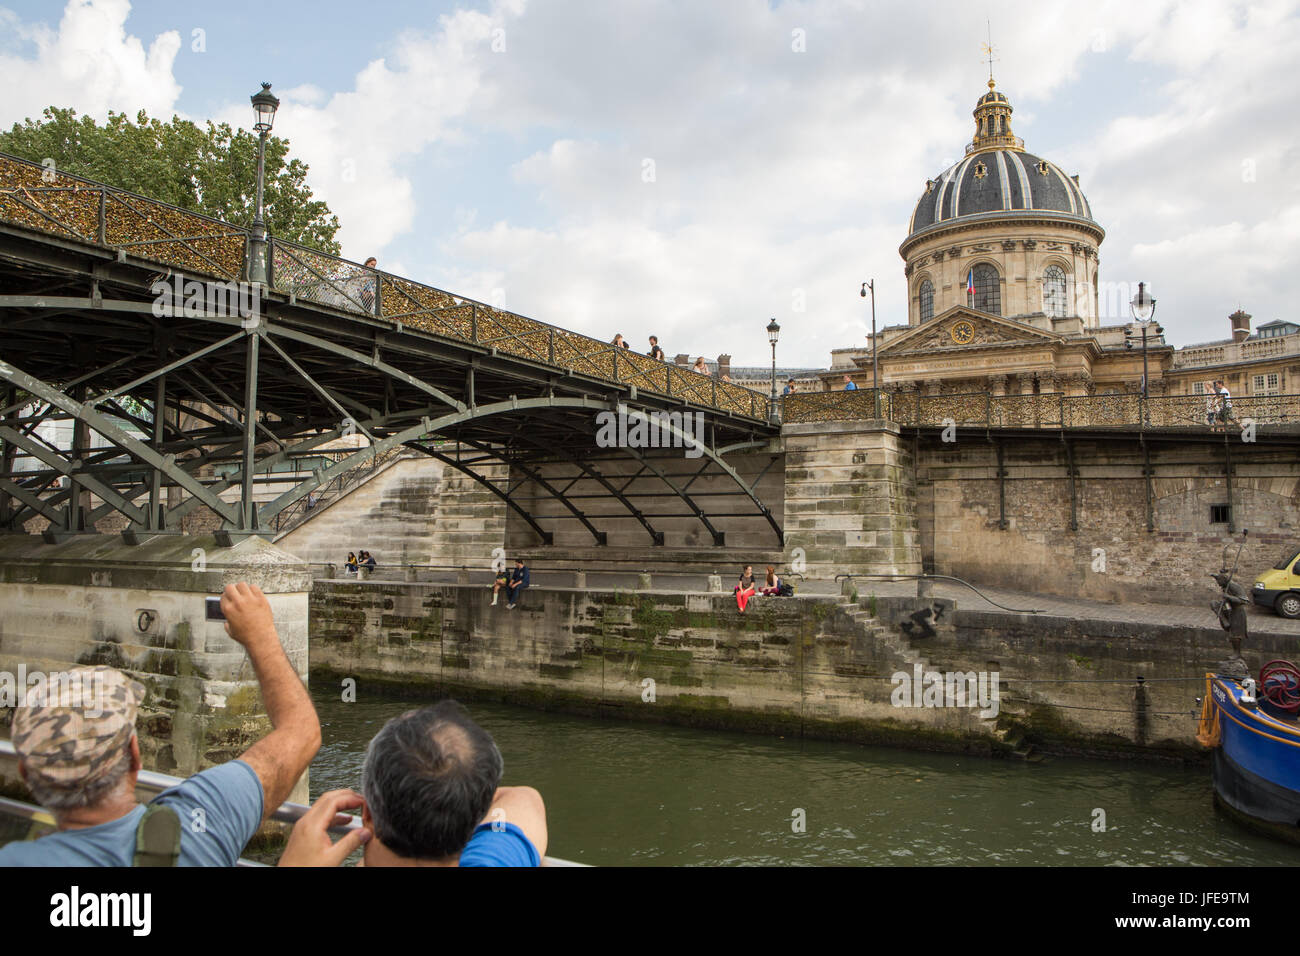 Tourists view the French Institute and the Pont des Arts, or Love Lock Bridge, from a boat cruising the Seine River. - Stock Image